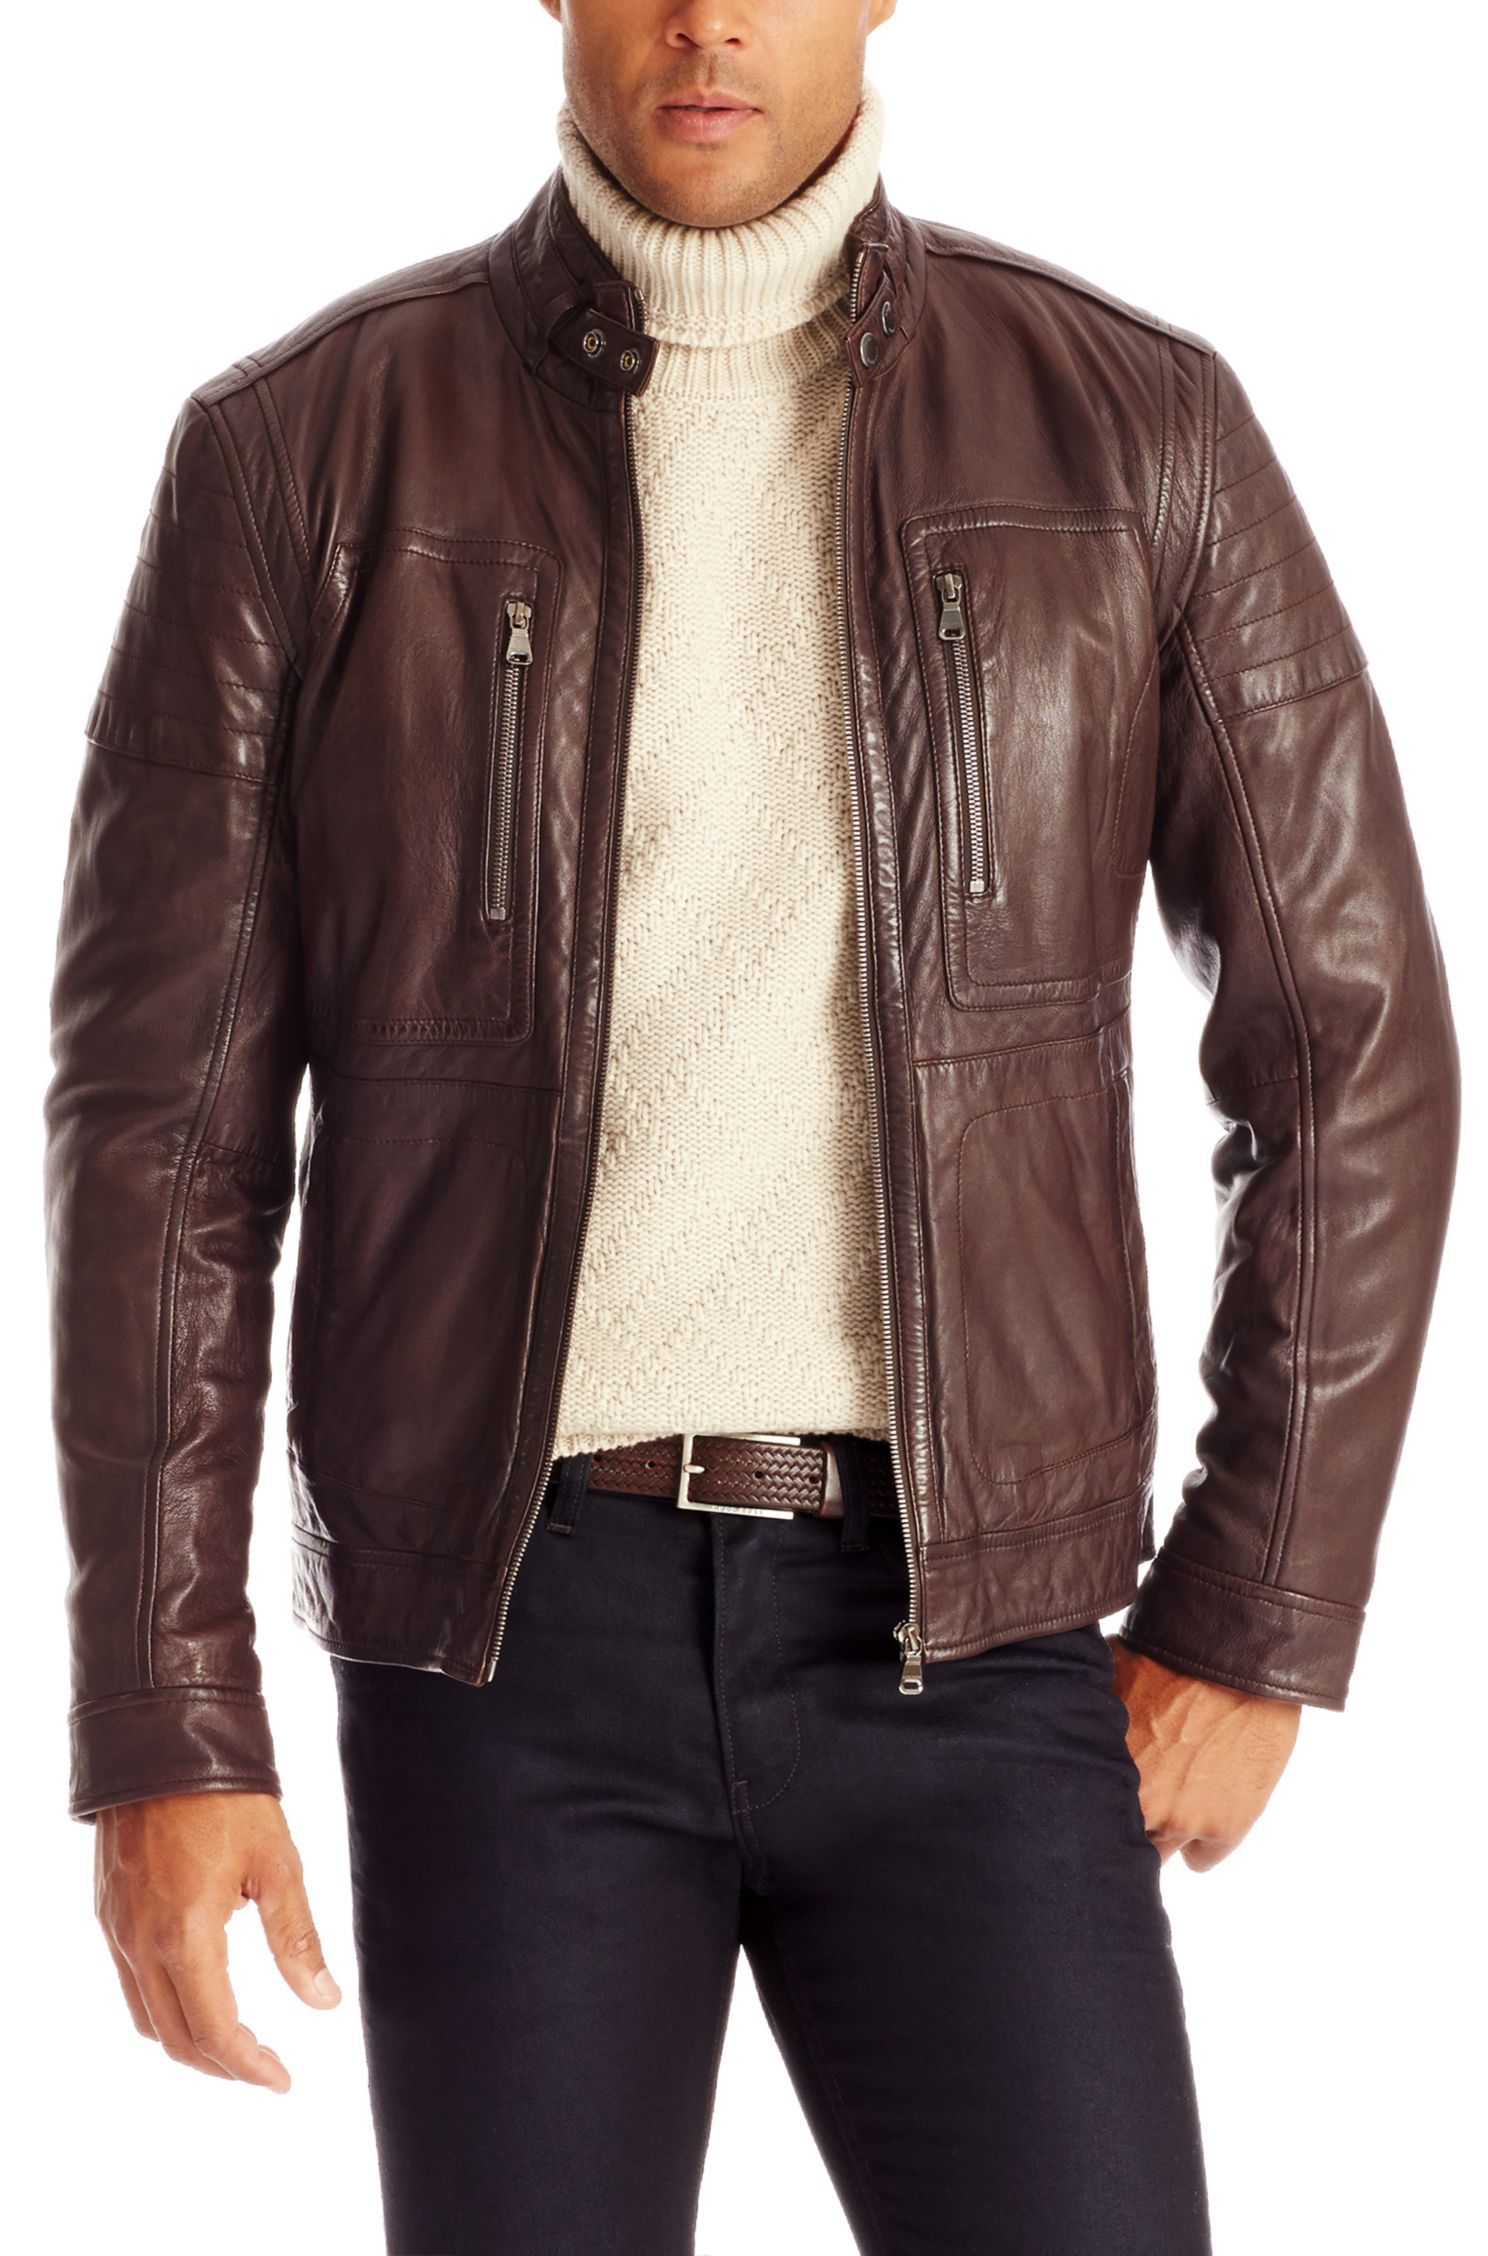 91d7b8378 Brown Leather Jacket Piel Chamarra Gento' Dark Café De qzt1RwUw